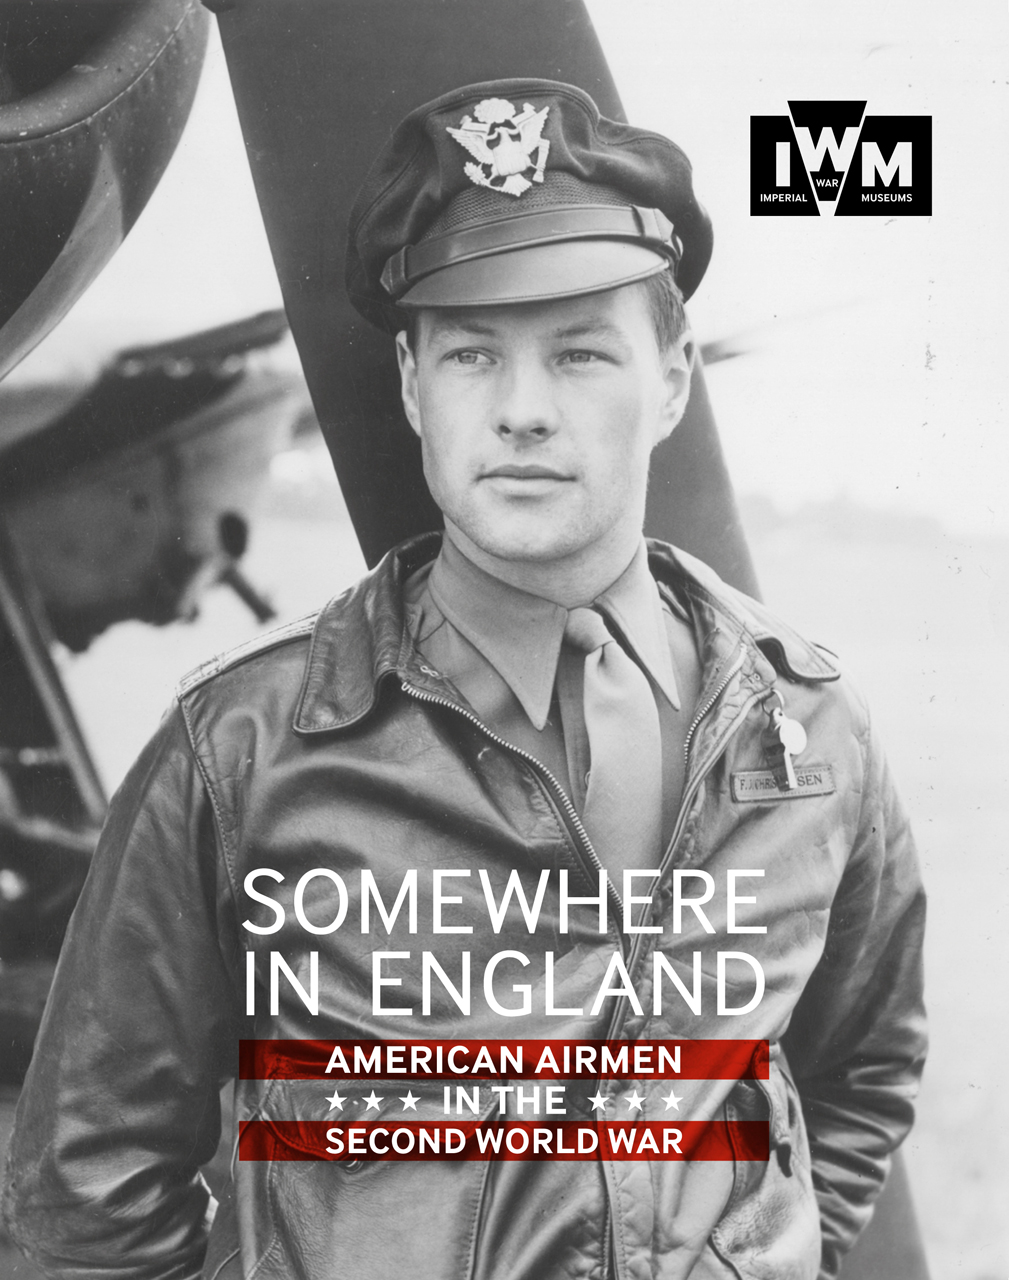 Somewhere in England: American Airmen in the Second World War